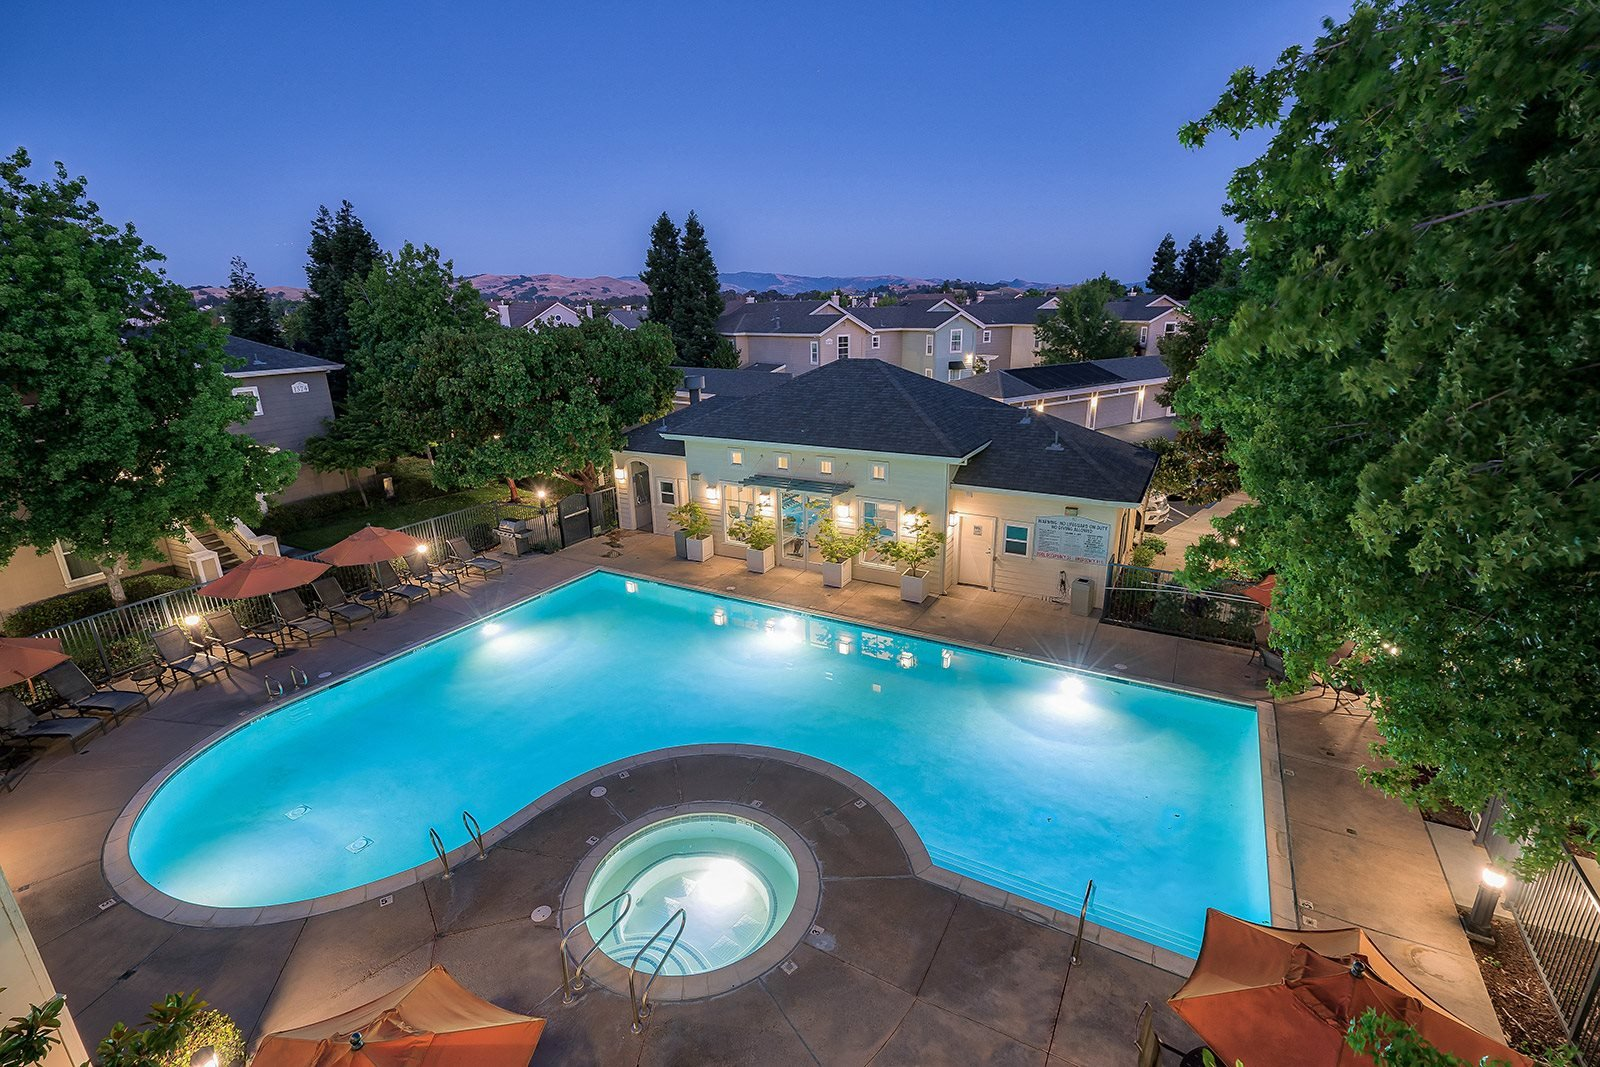 Views of Pleasanton Ridge at The Kensington, Pleasanton, California